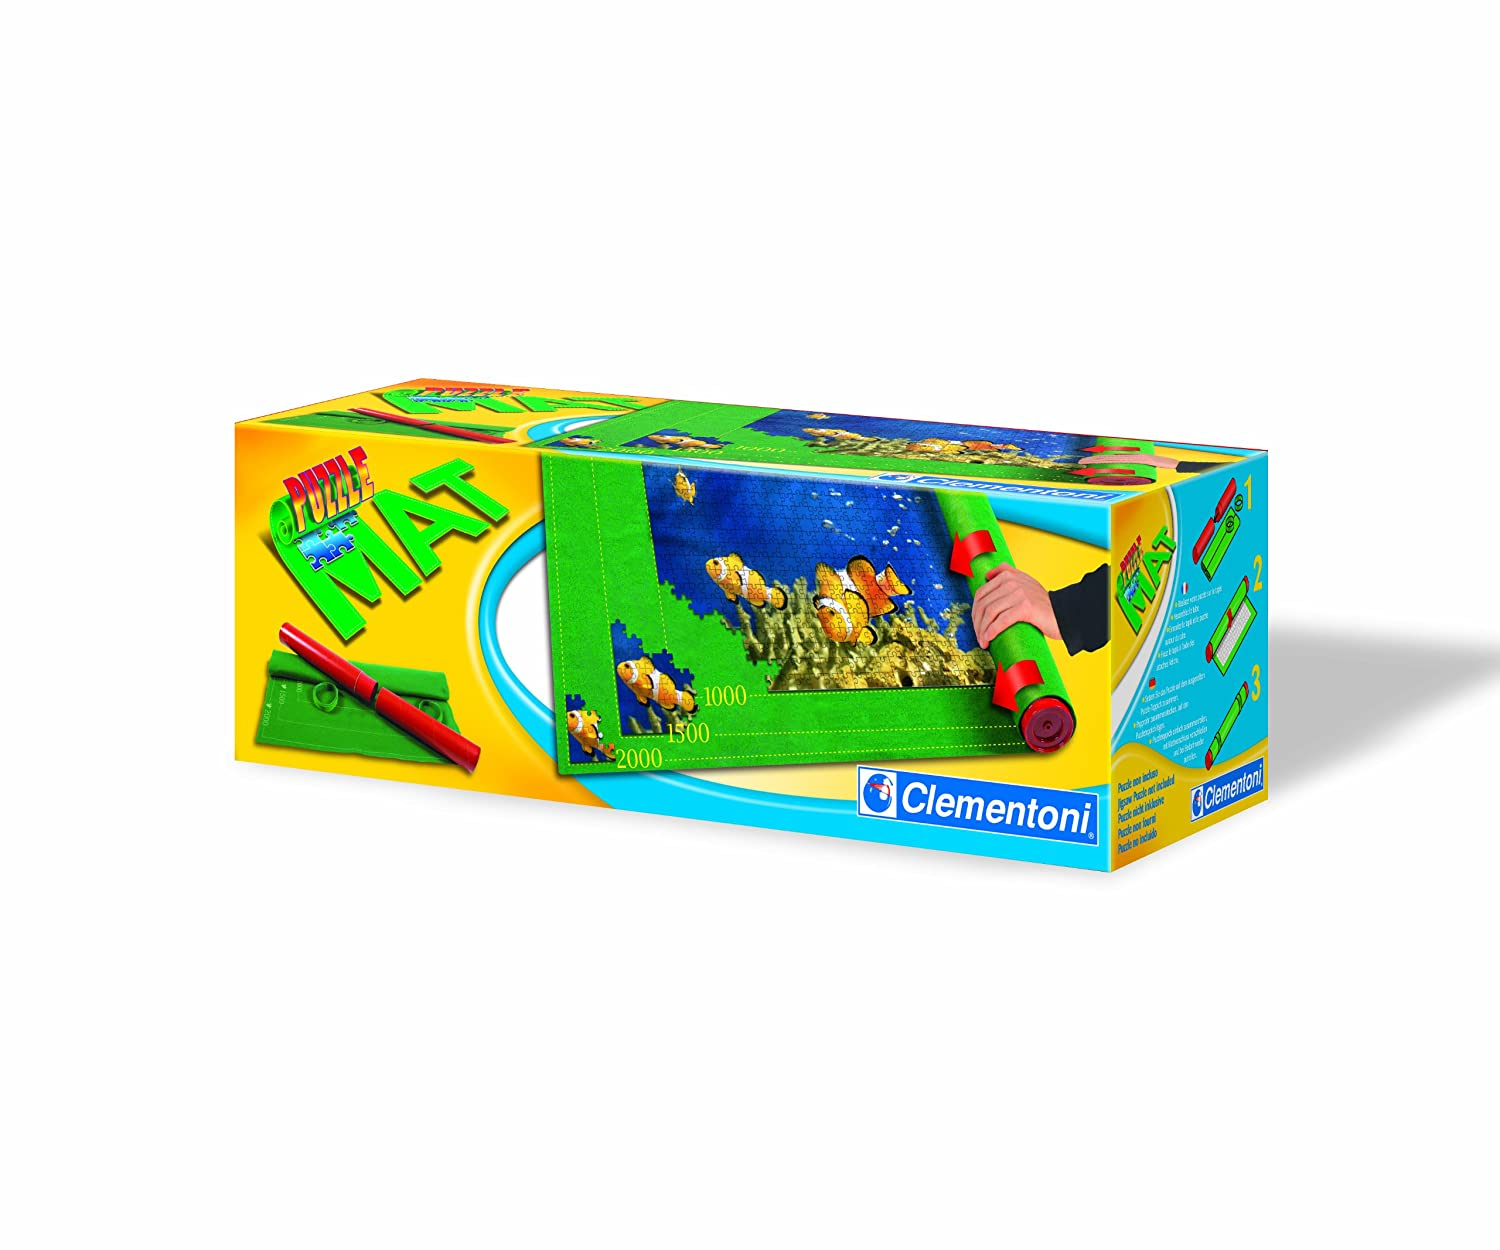 Clementoni 30298 Puzzle Roll Clementoni Spa Italy B000NO25LK